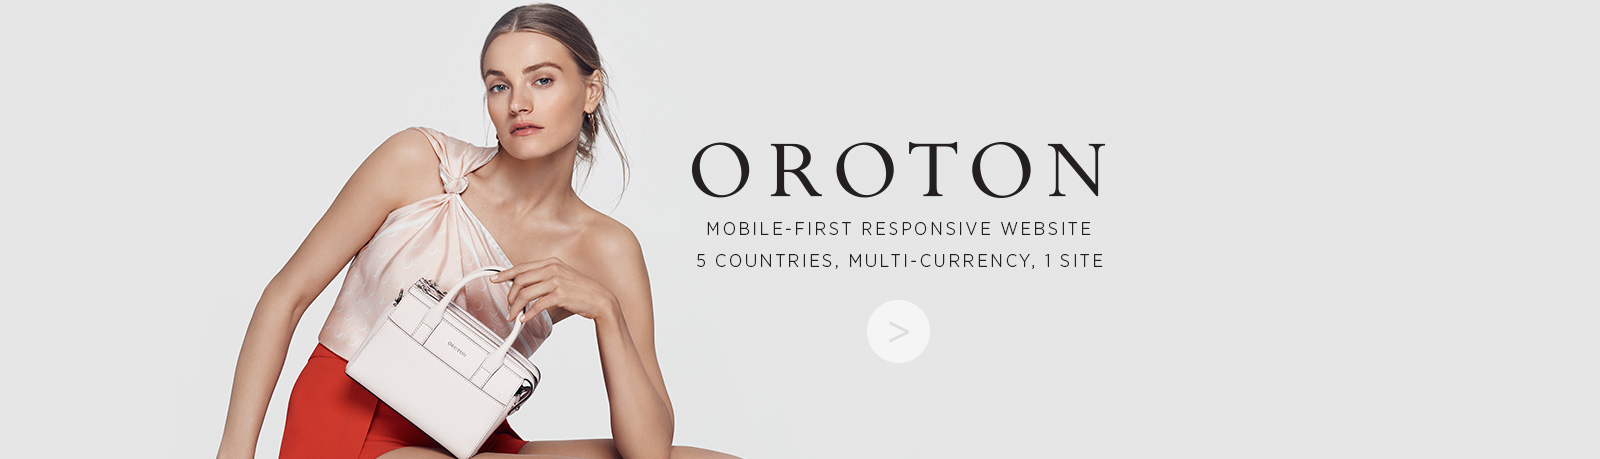 Now Solutions partnering with Oroton to develop Mobile first responsive website